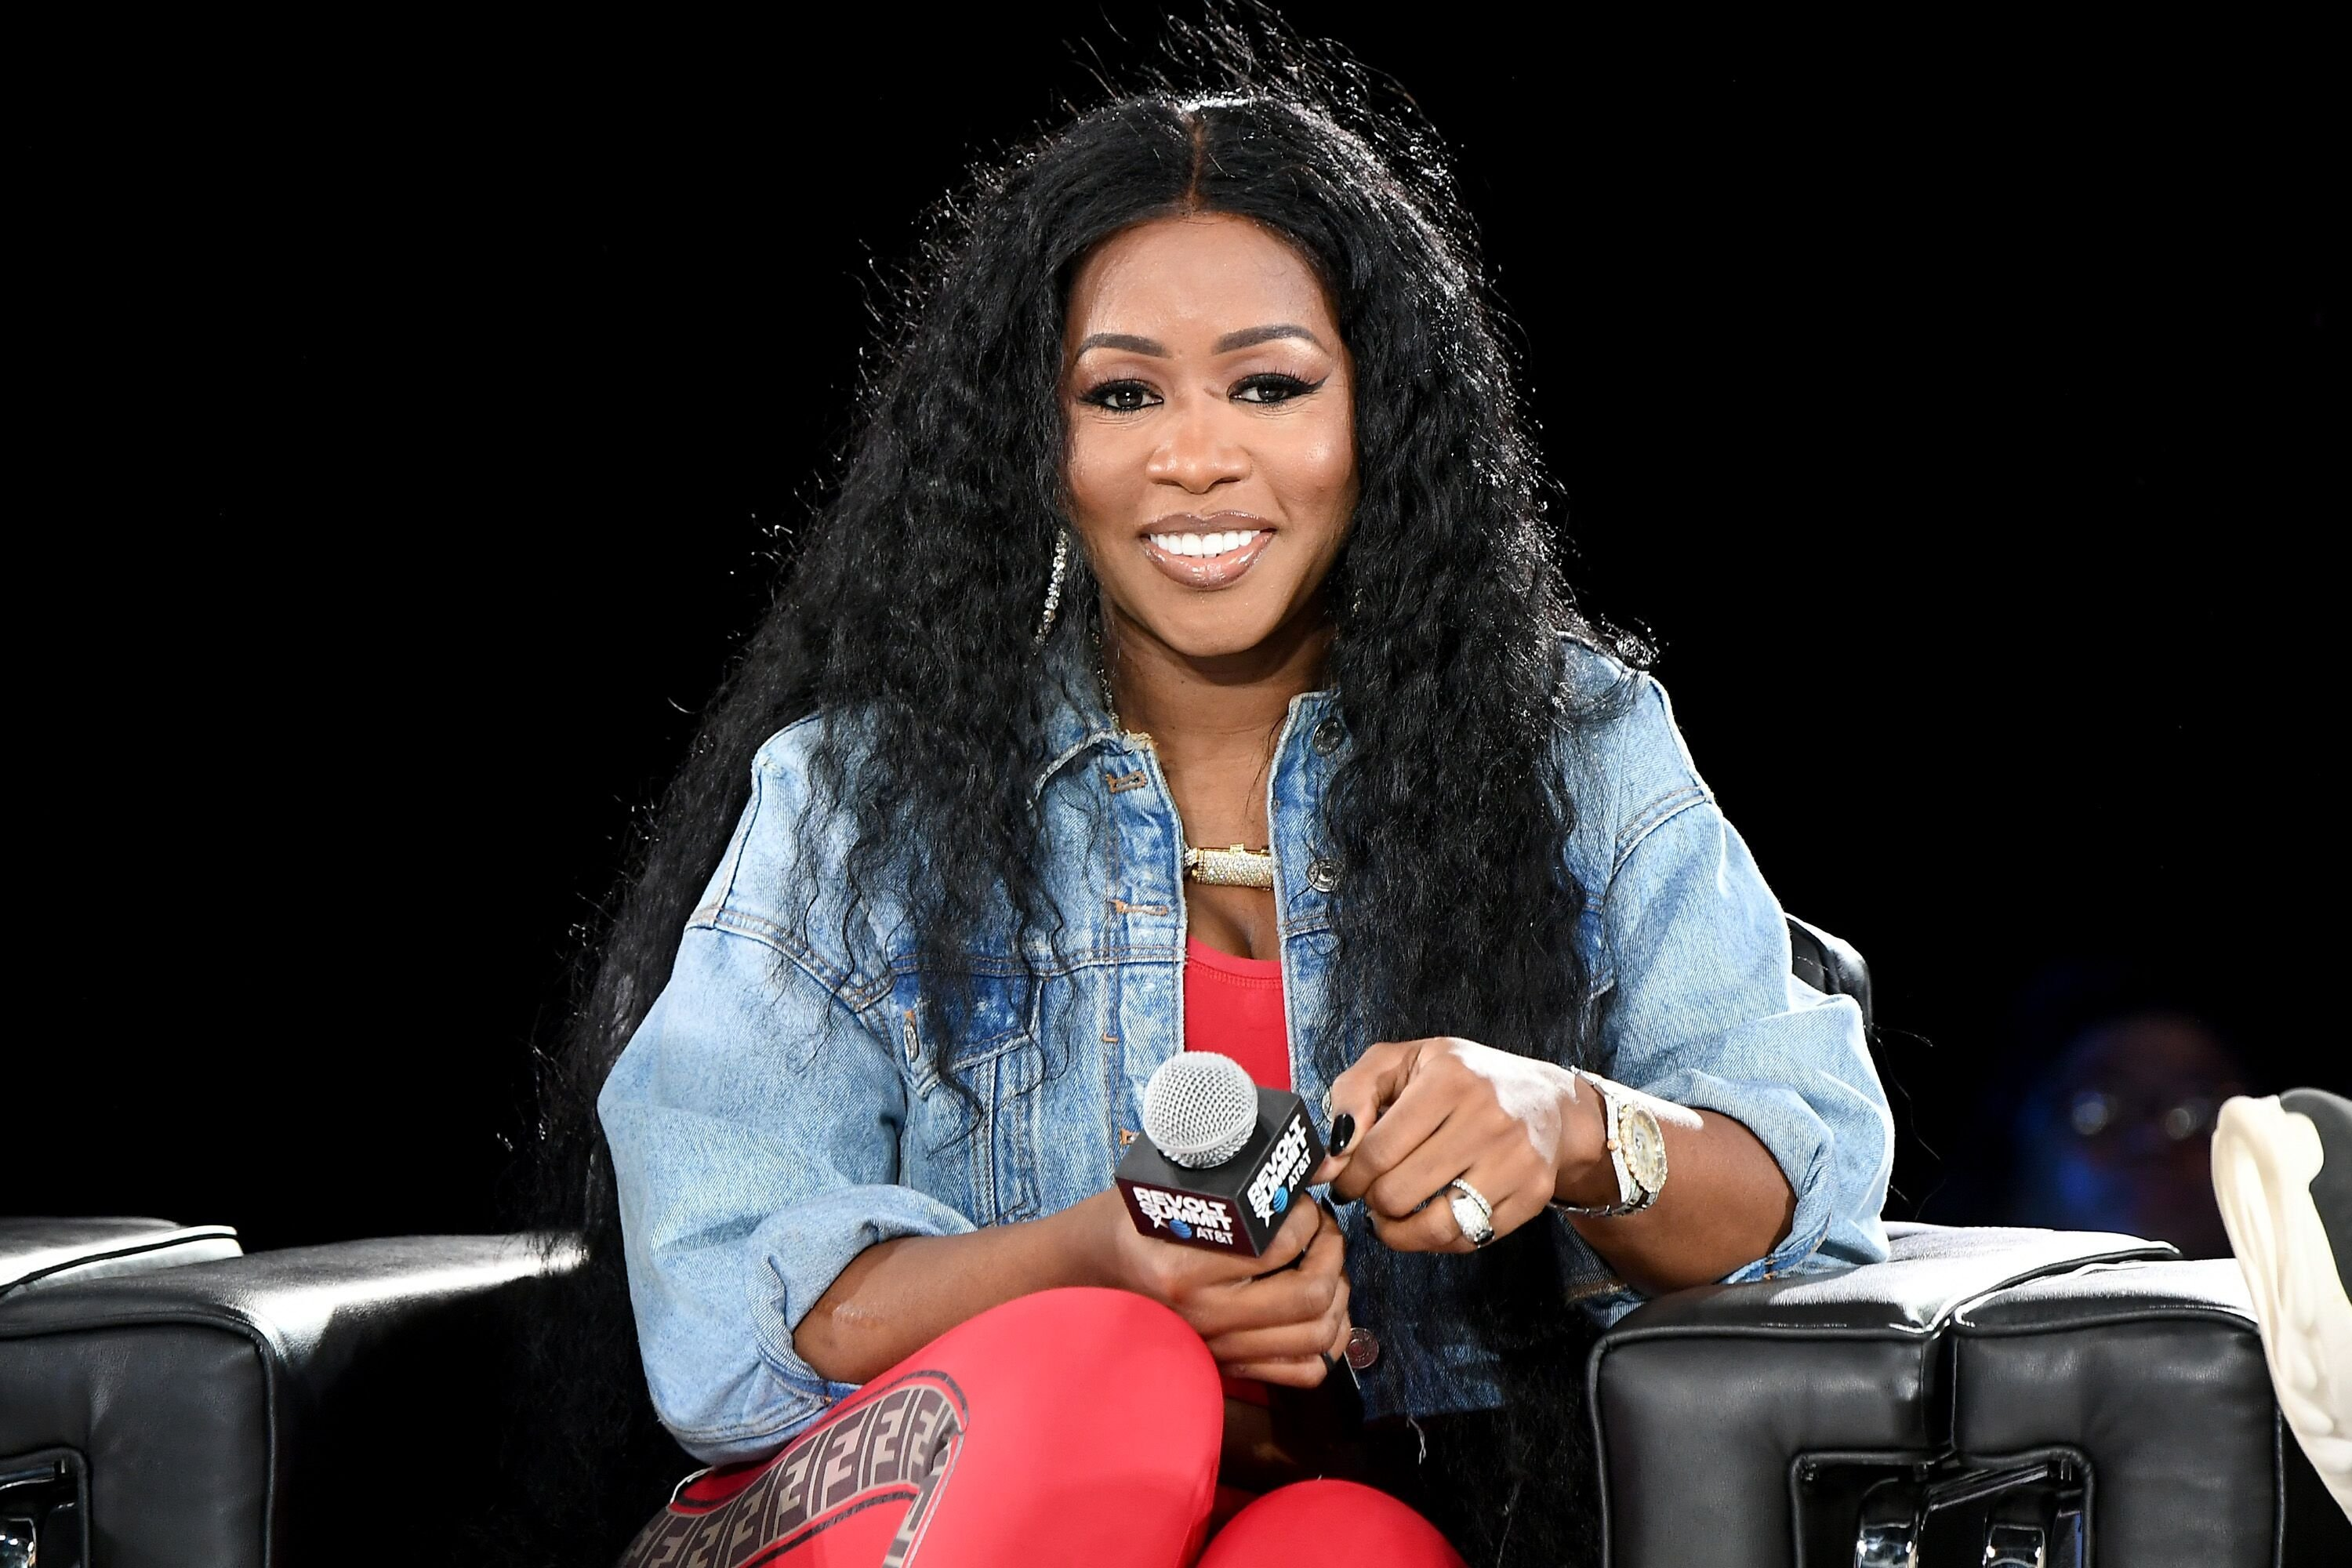 Remy Ma onstage at the Revolt Summit x AT&T event in Atlanta, Georgia | Source: Getty Images/GlobalImagesUkraine